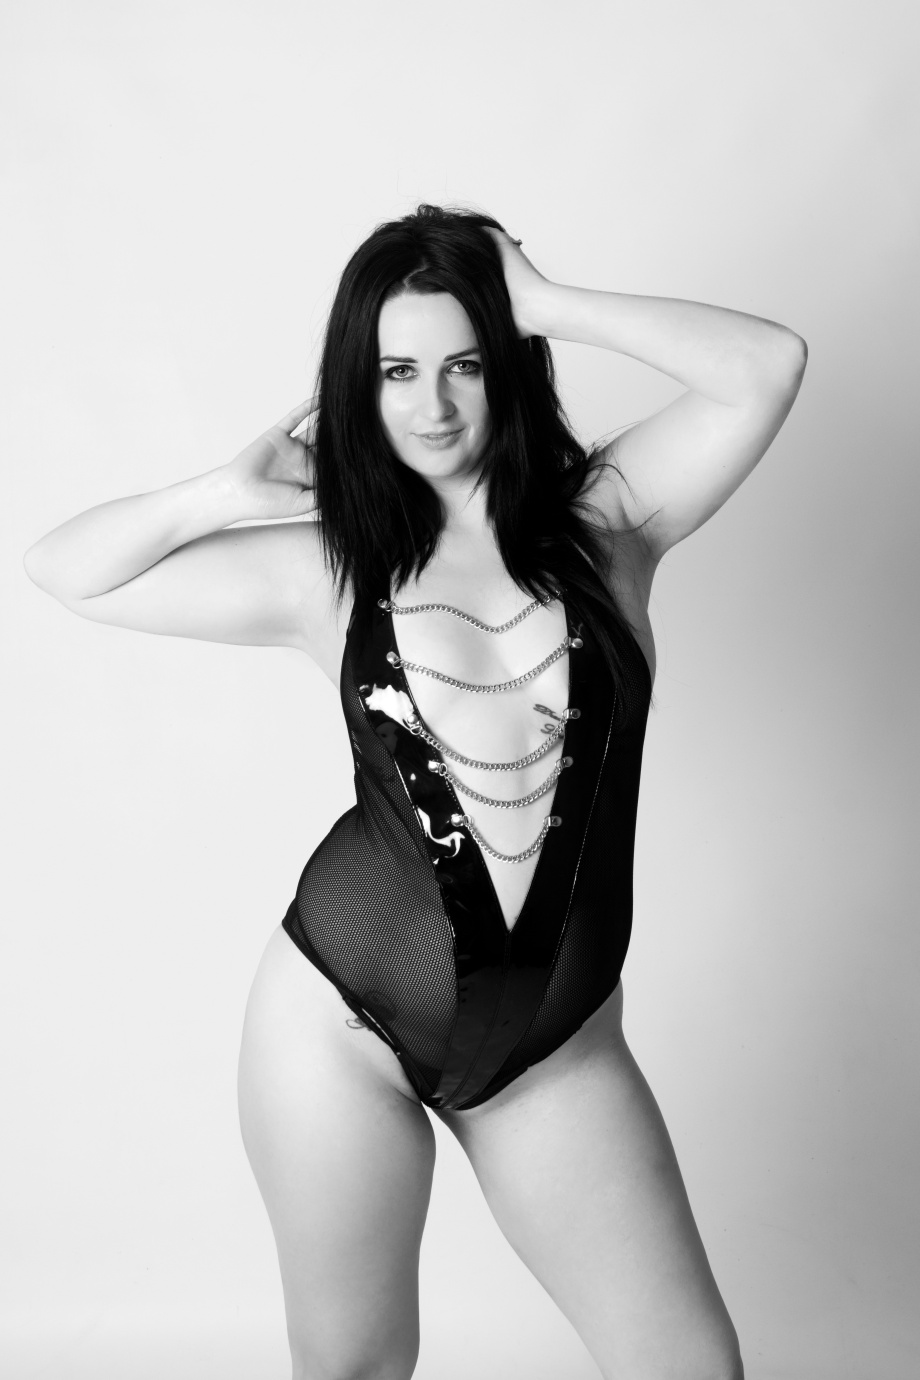 portrait, glamour, boudoir, cork, ireland, studio photography, tfp, models wanted, lingerie, black and white